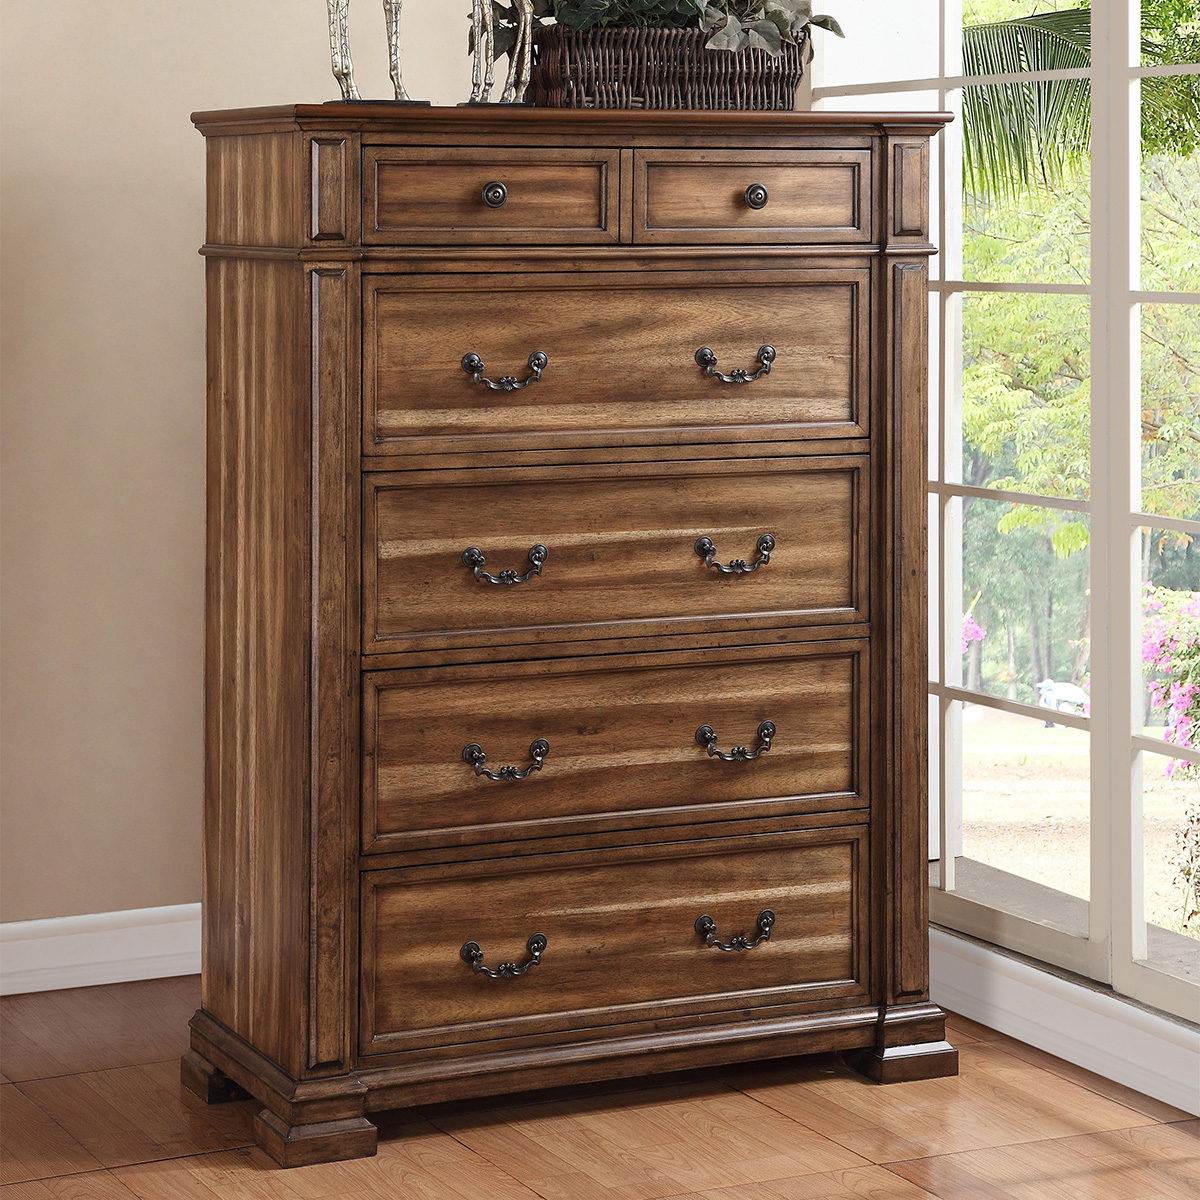 Legends furniture zbcl 7016 barclay chest of drawers in distressed rustic acacia w iron work accents